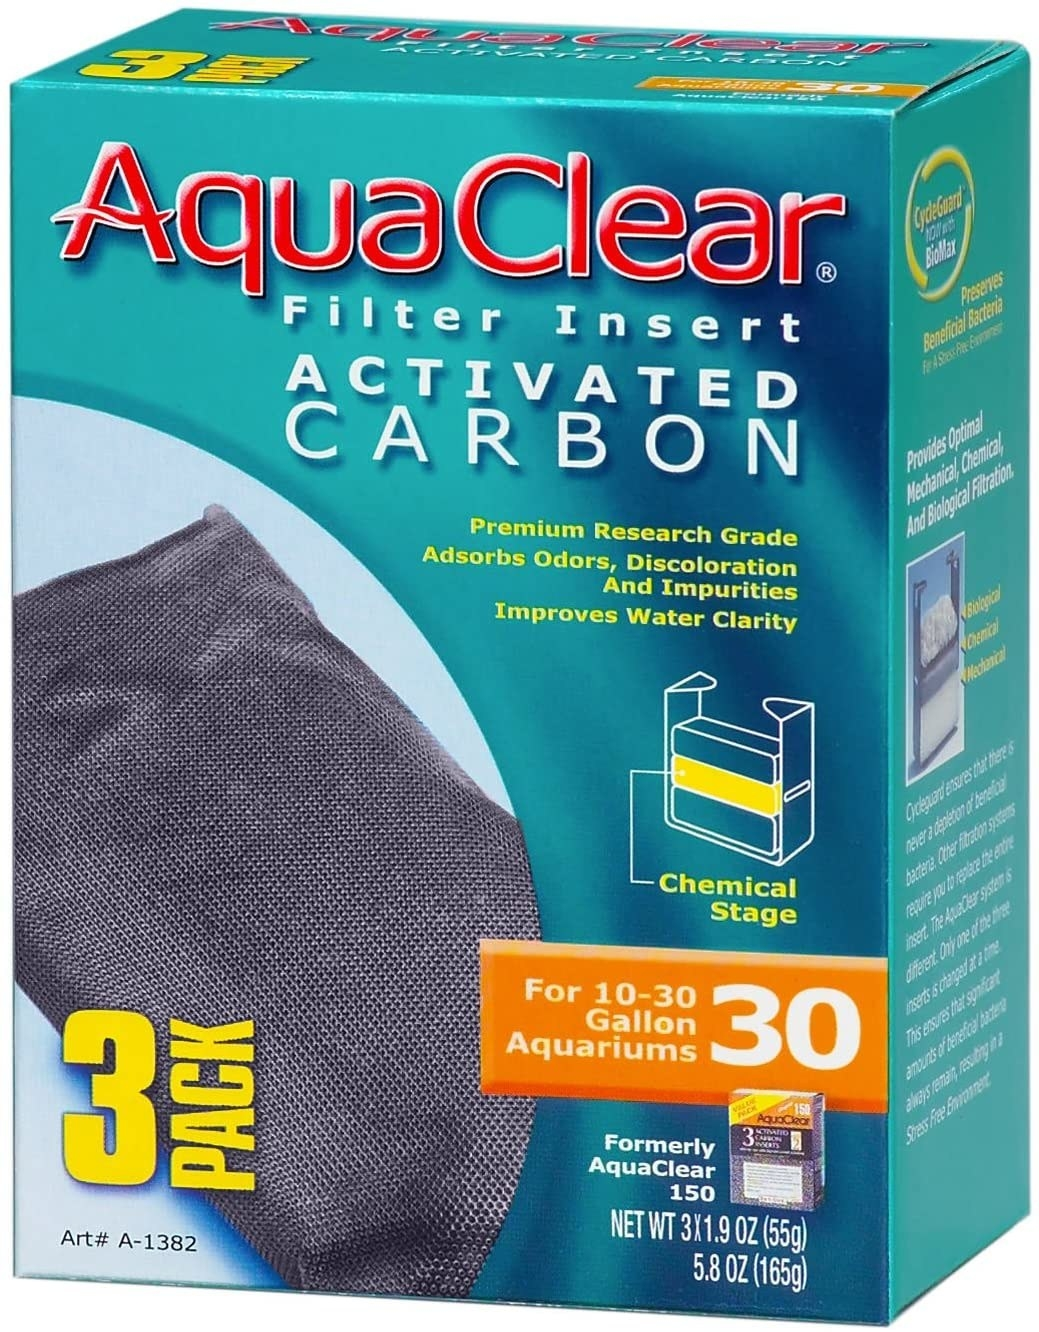 AquaClearFilter Insert Carbon Filter packaging for fish tank